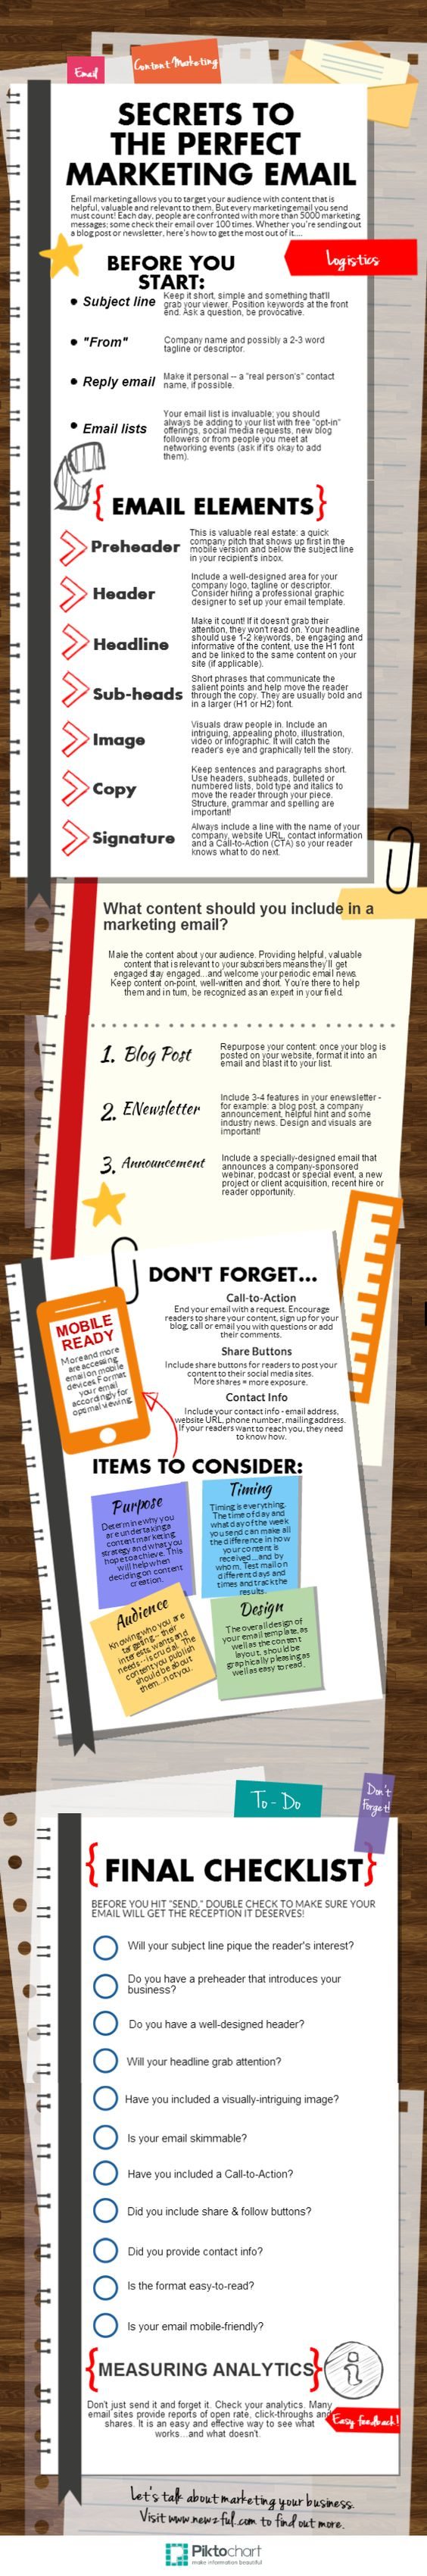 Tips on creating the perfect #marketing emails for your #Hendersonville local business http://zanraconsulting.com/